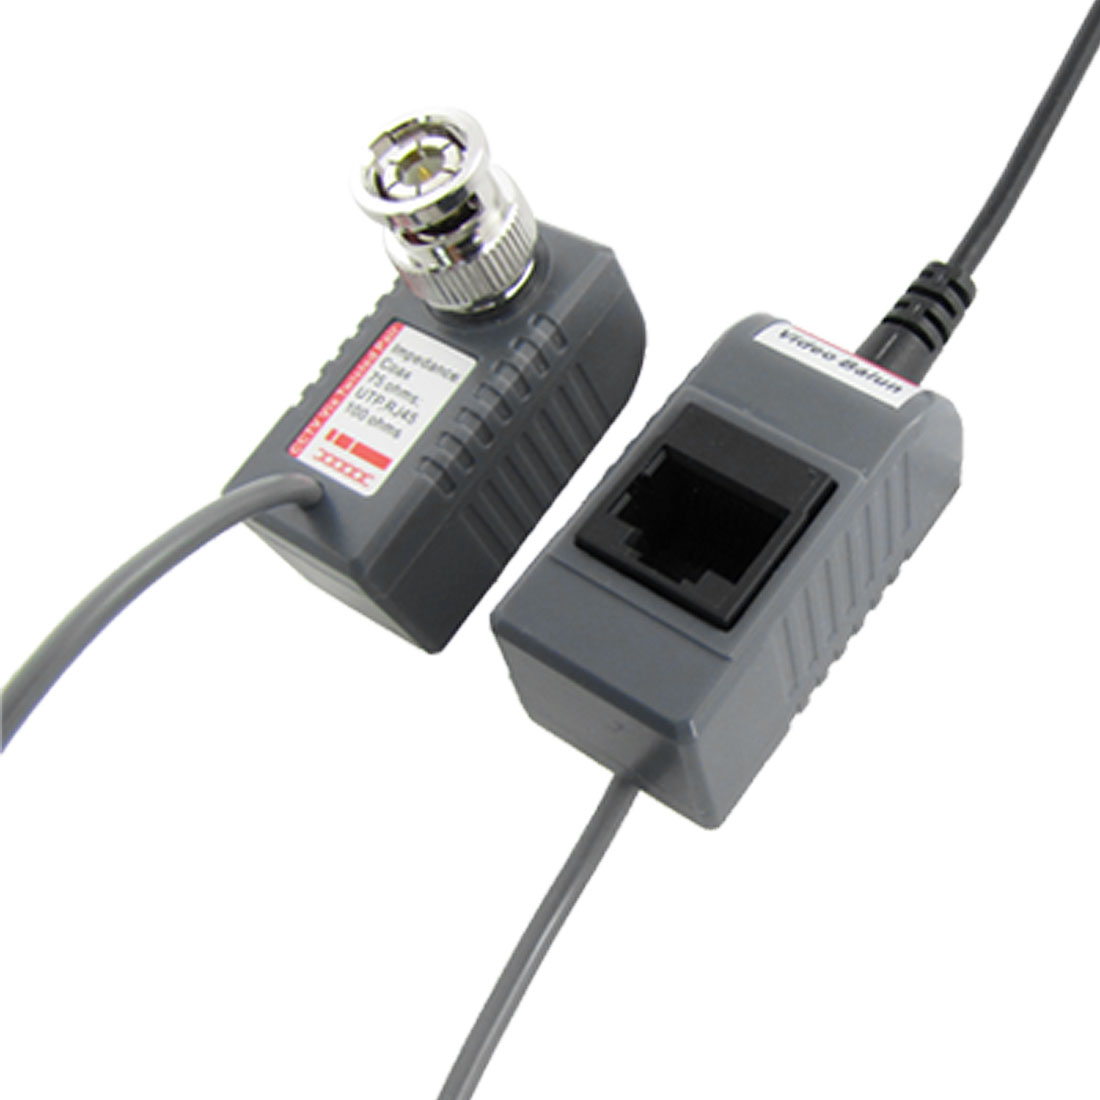 CCTV Camera BNC 2.1x5.5mm Video Power Balun 200M UTP Transceiver